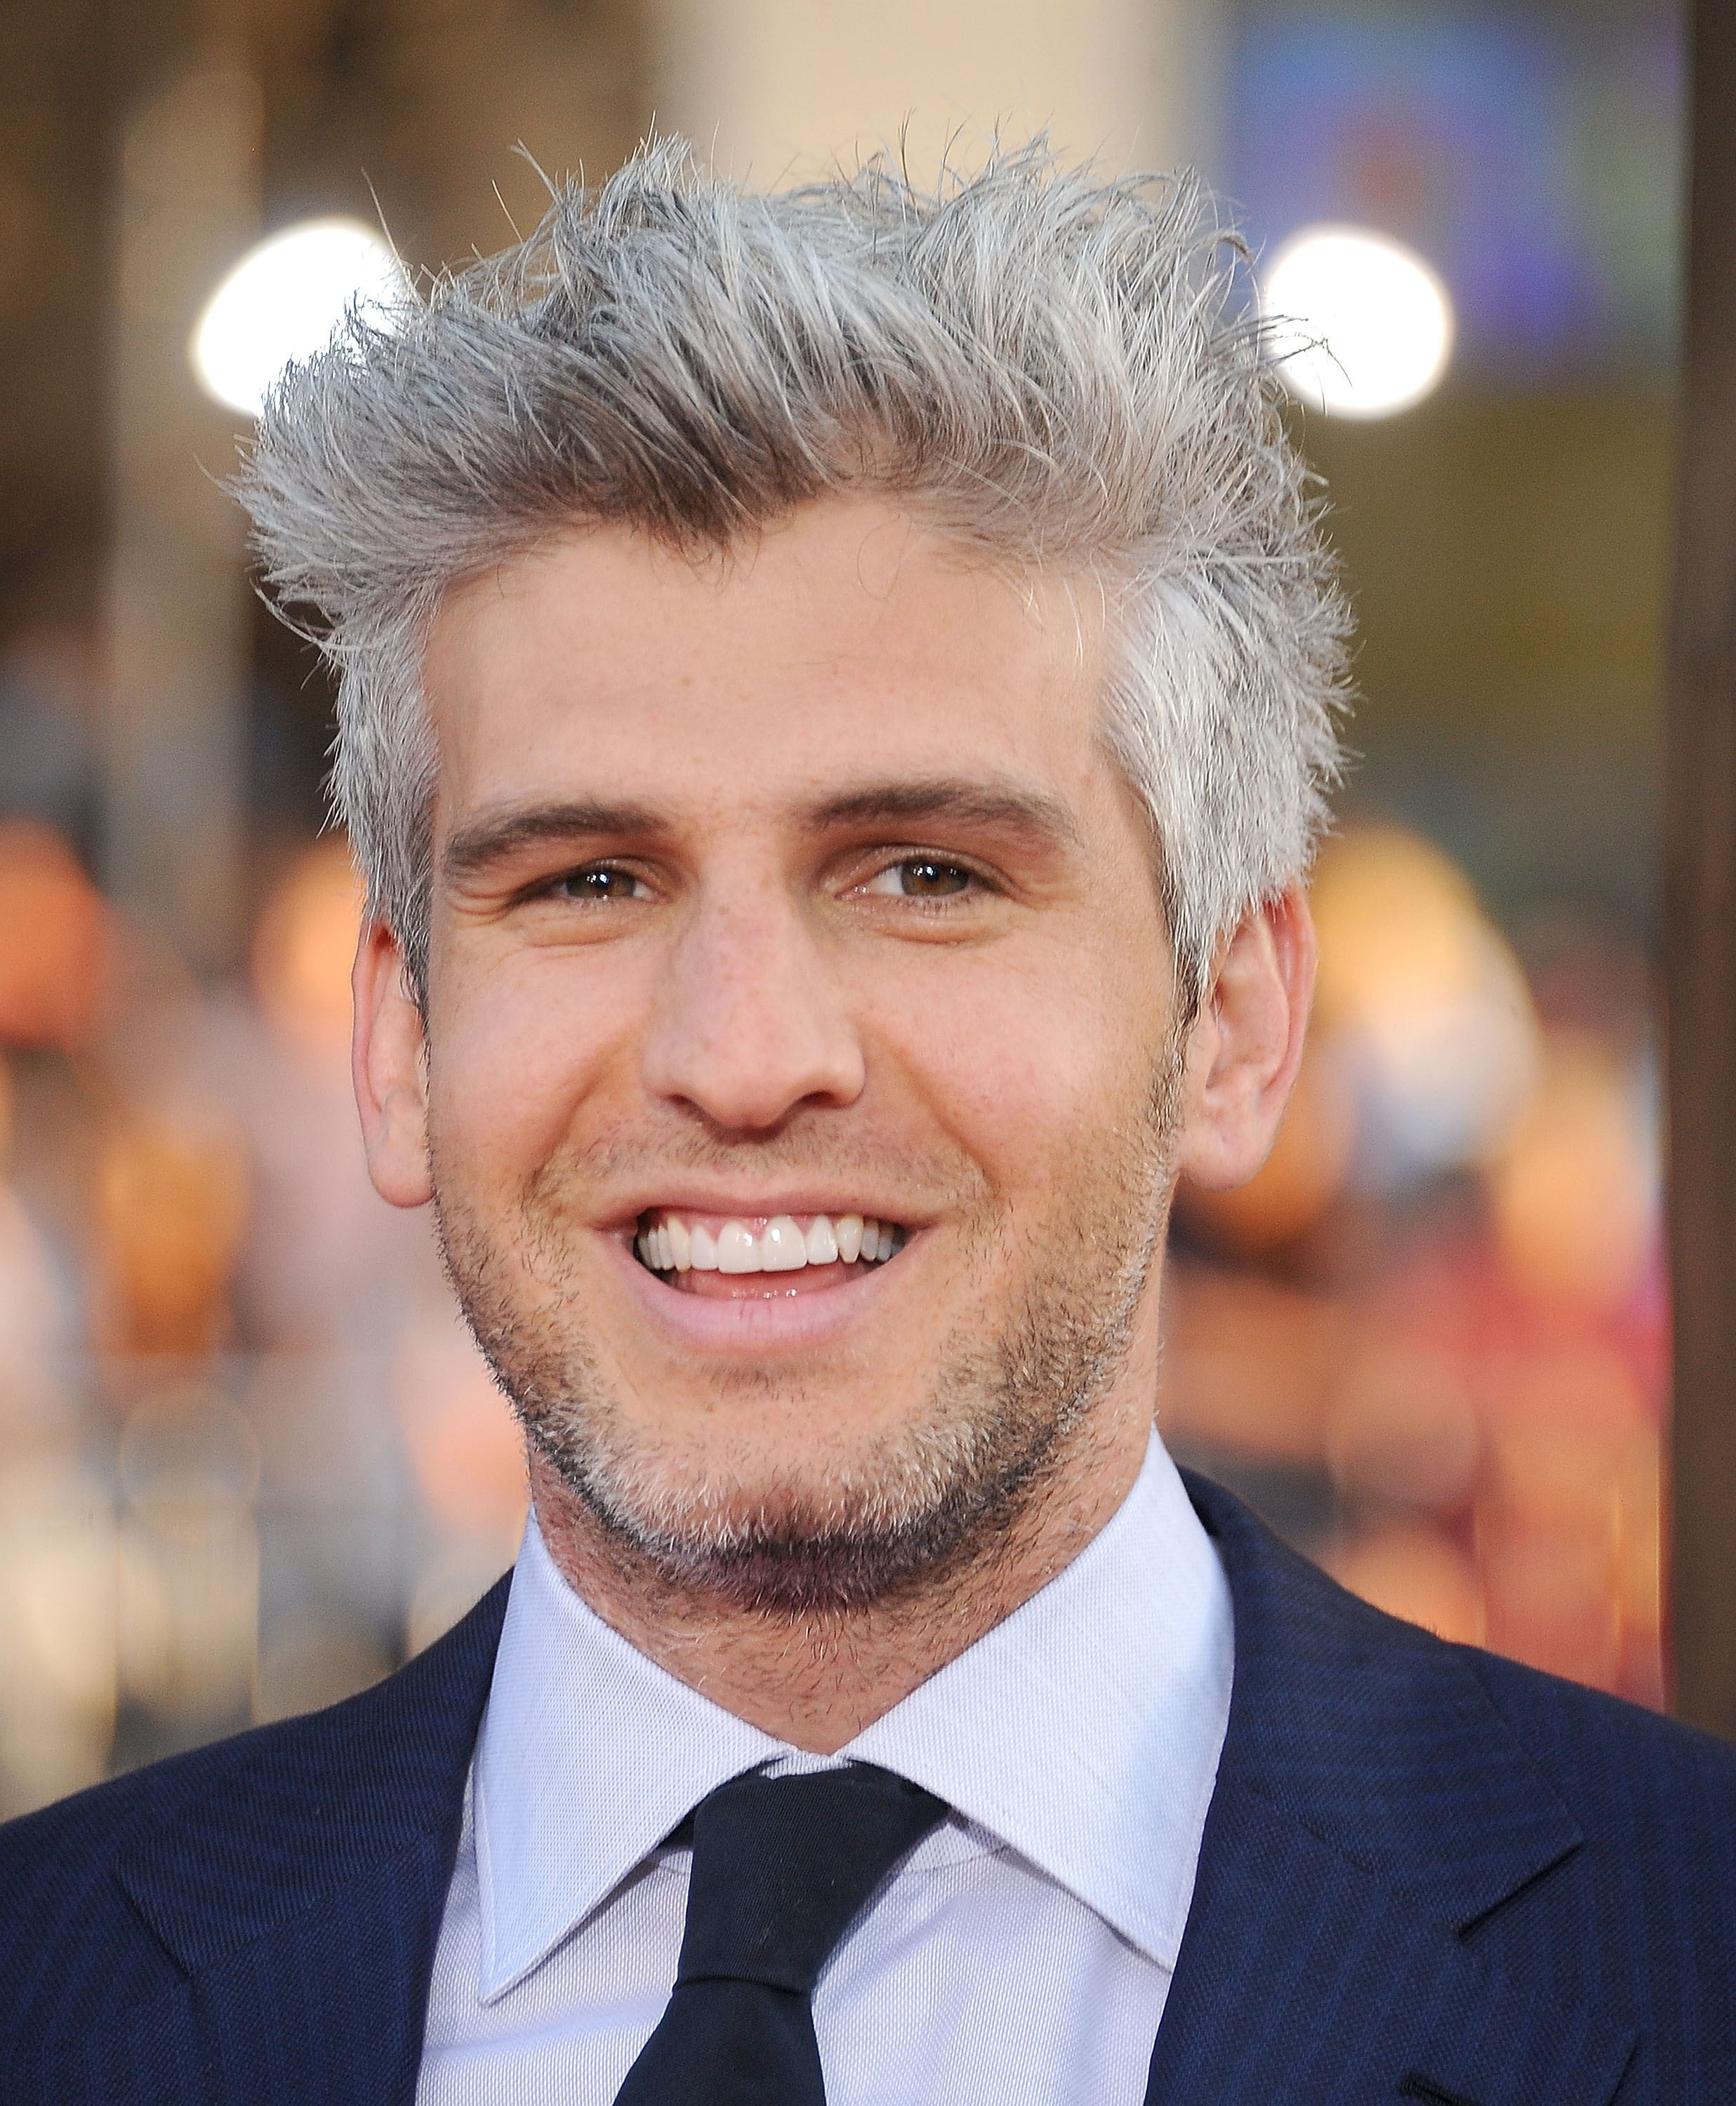 Director Max Joseph arrives at the premiere of Warner Bros. Pictures'  We Are Your Friends  at TCL Chinese Theatre on Aug. 20, 2015 in Hollywood.